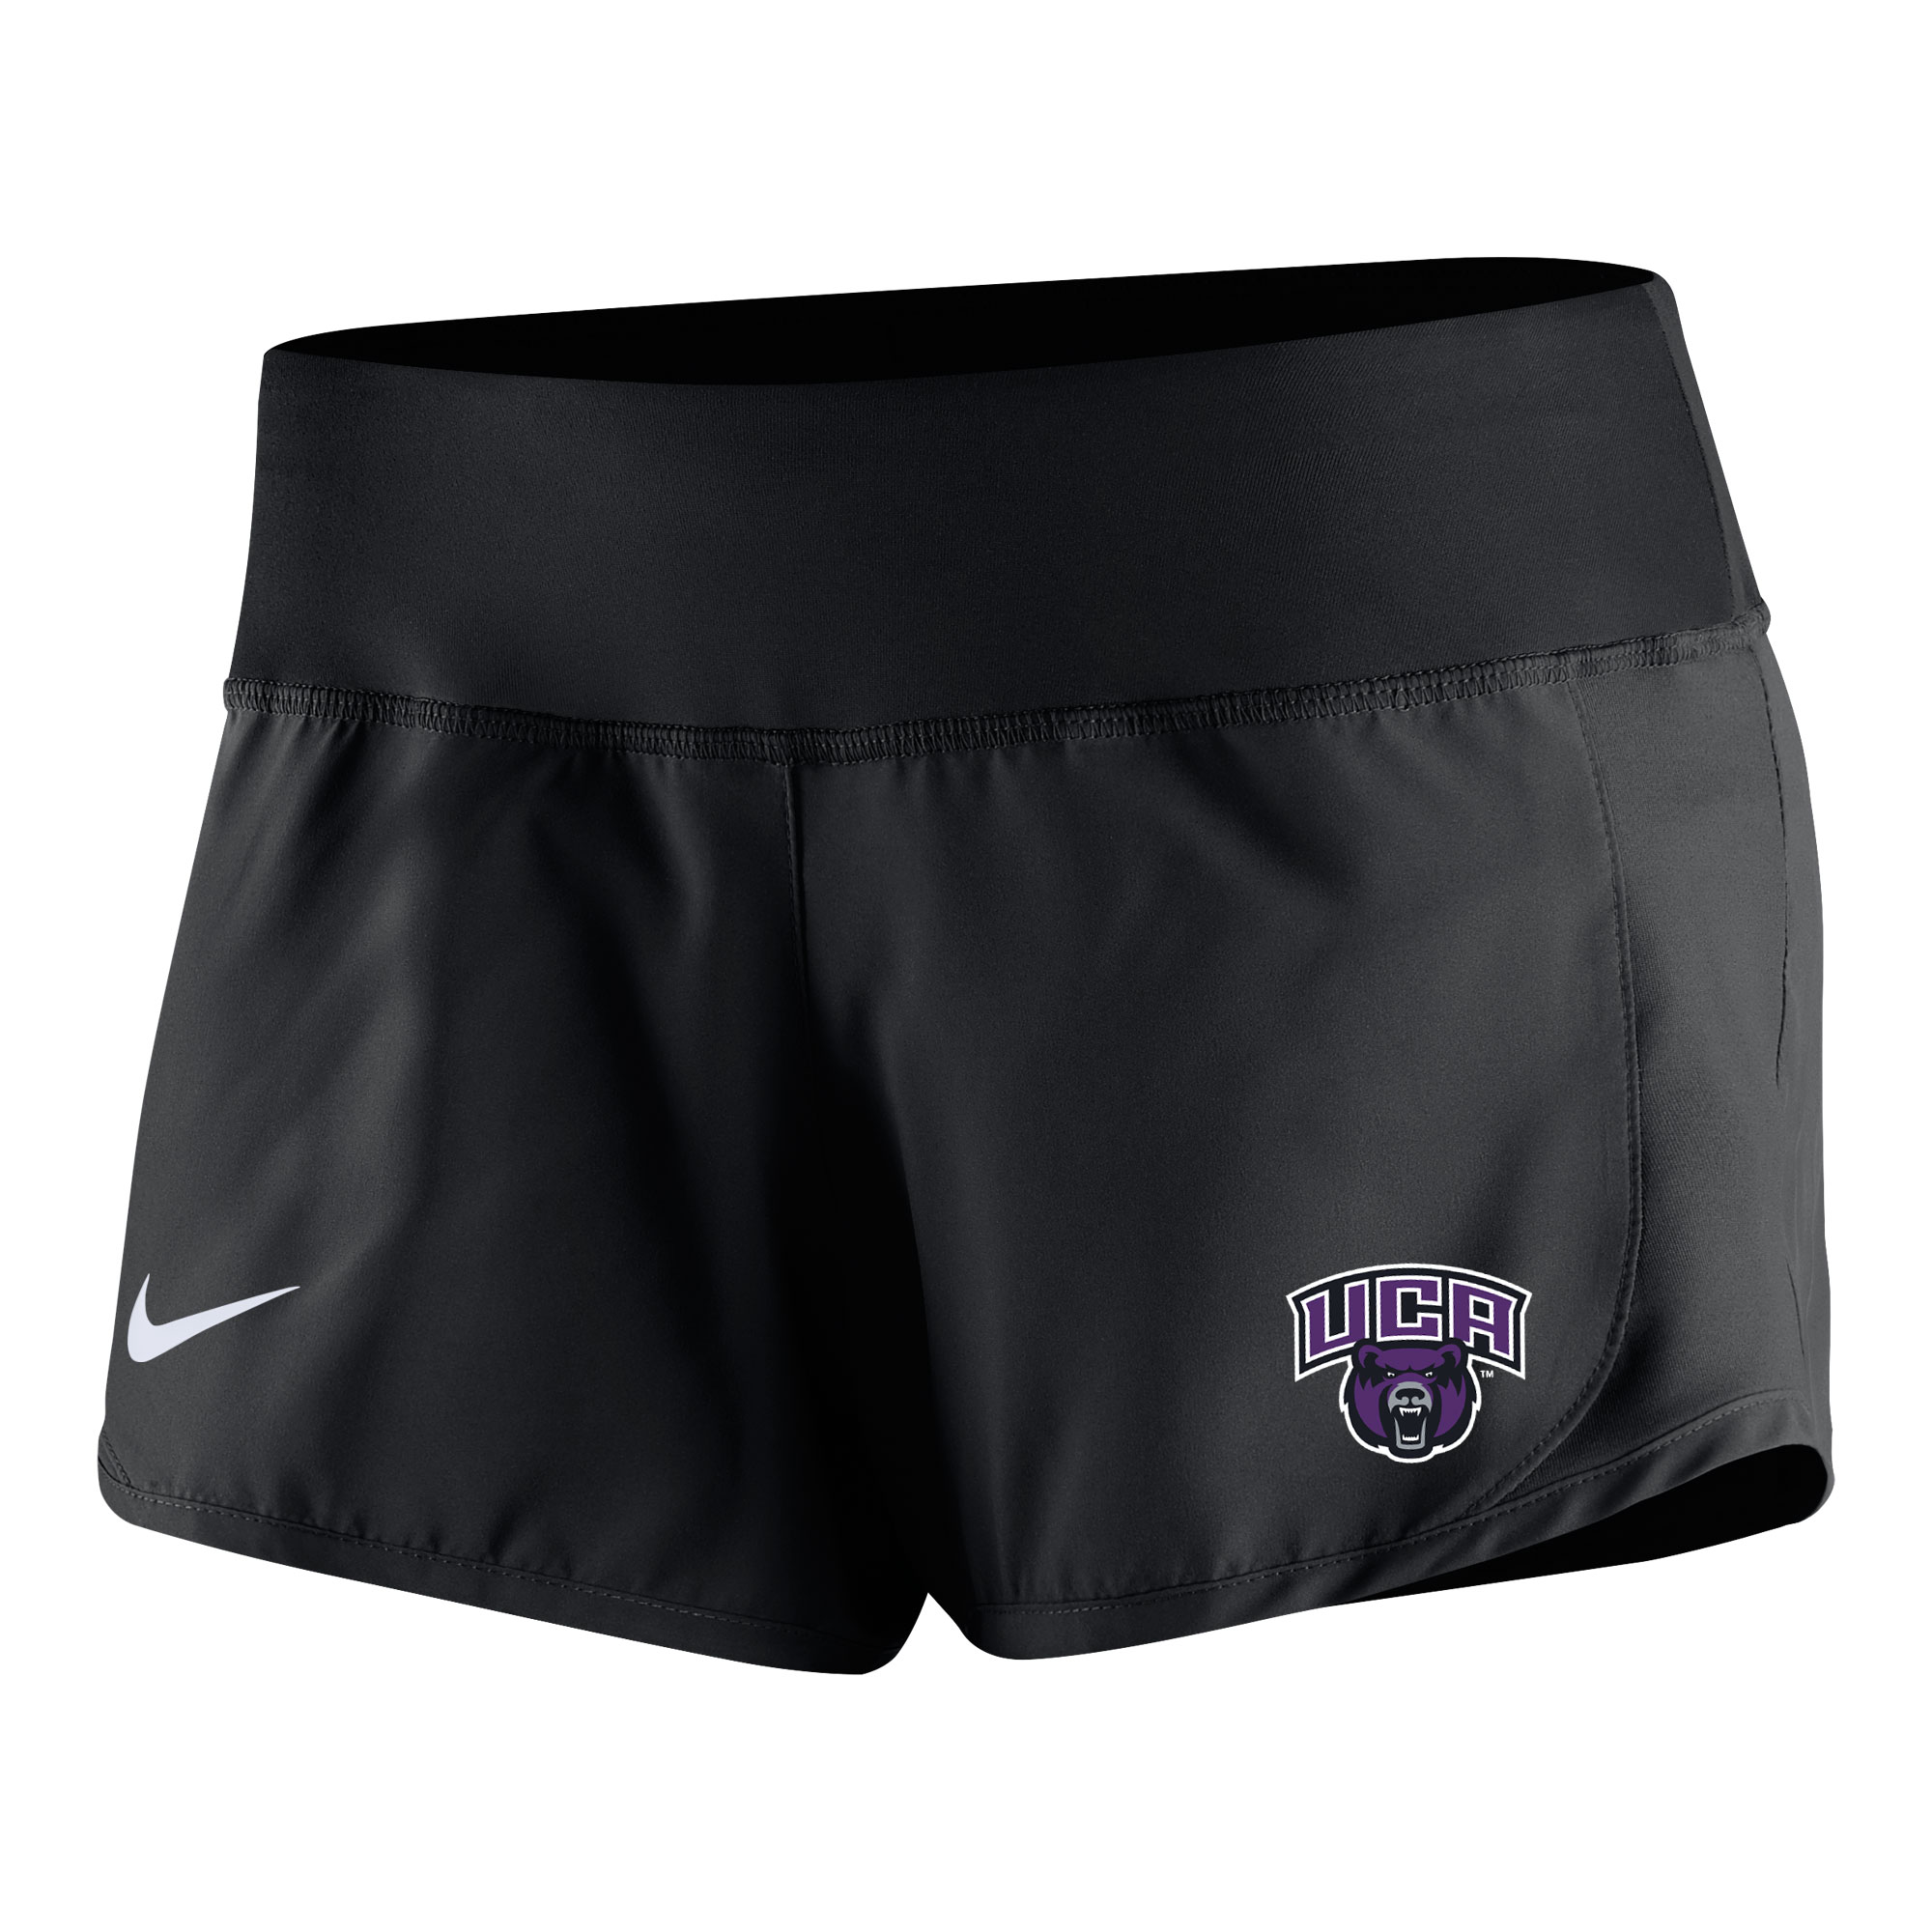 UCA Gear Up Crew Short